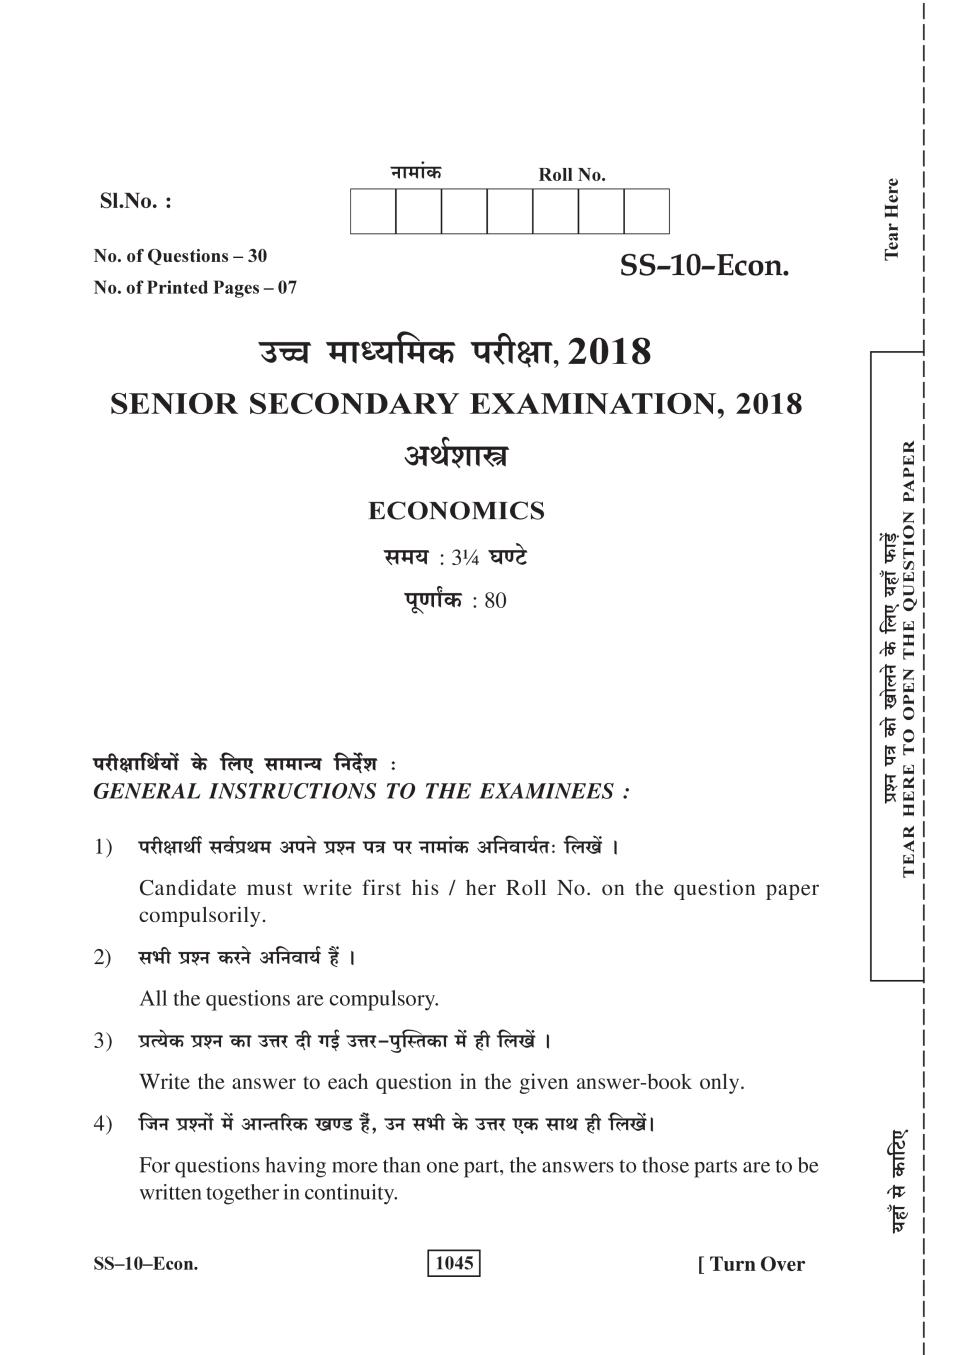 Rajasthan Board 12th Class Economics Question Paper 2018 - Page 1